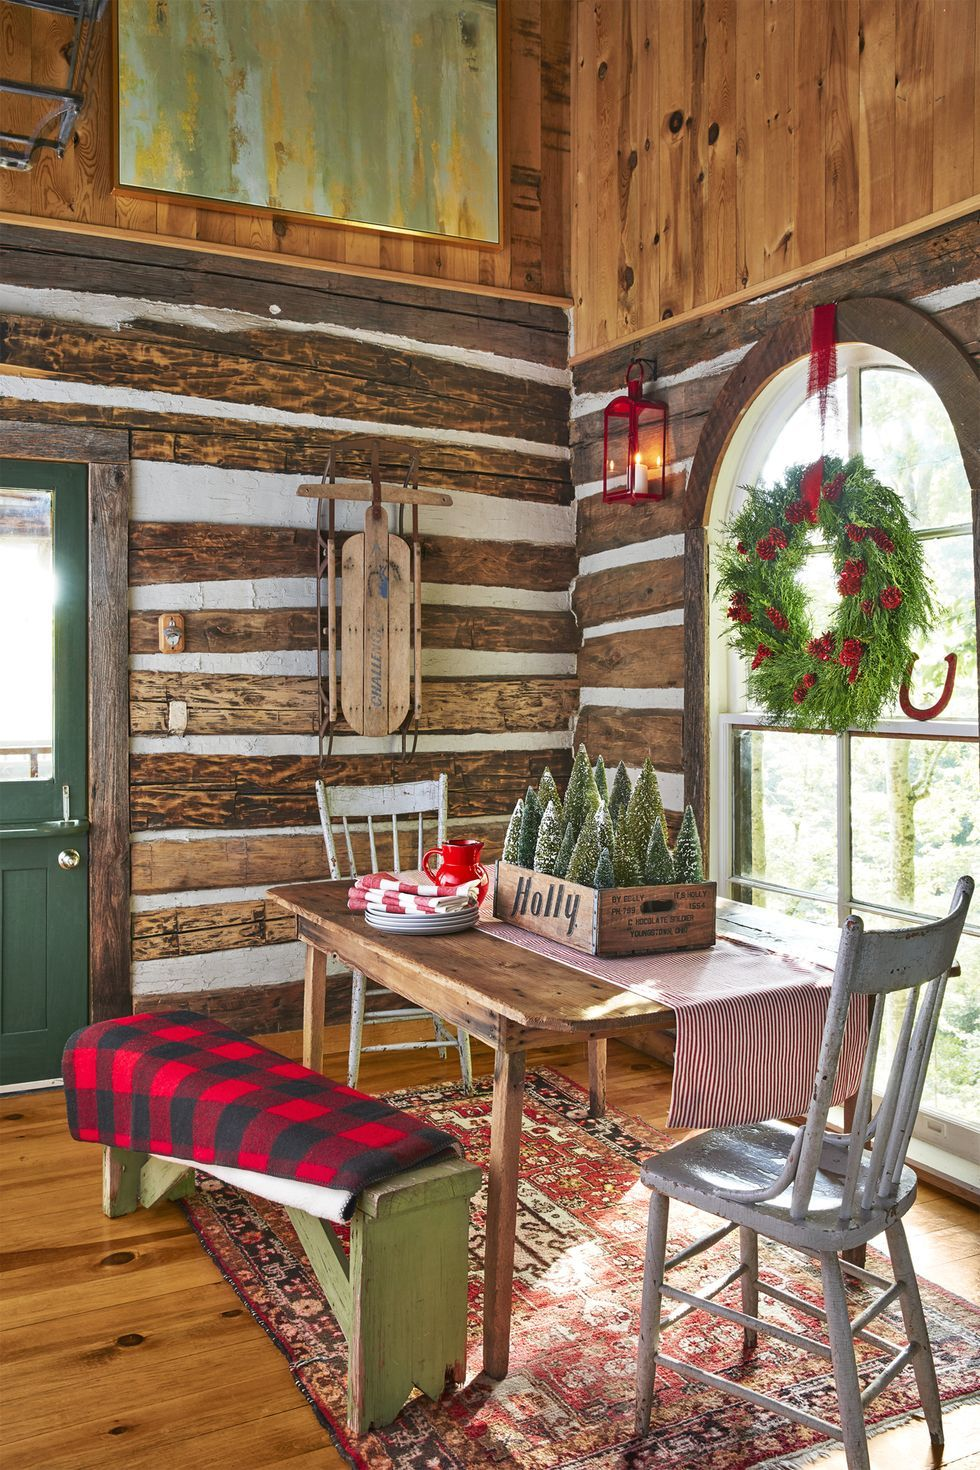 18 Best Winter Decorating Ideas Diy Indoor And Outdoor Winter Decorations